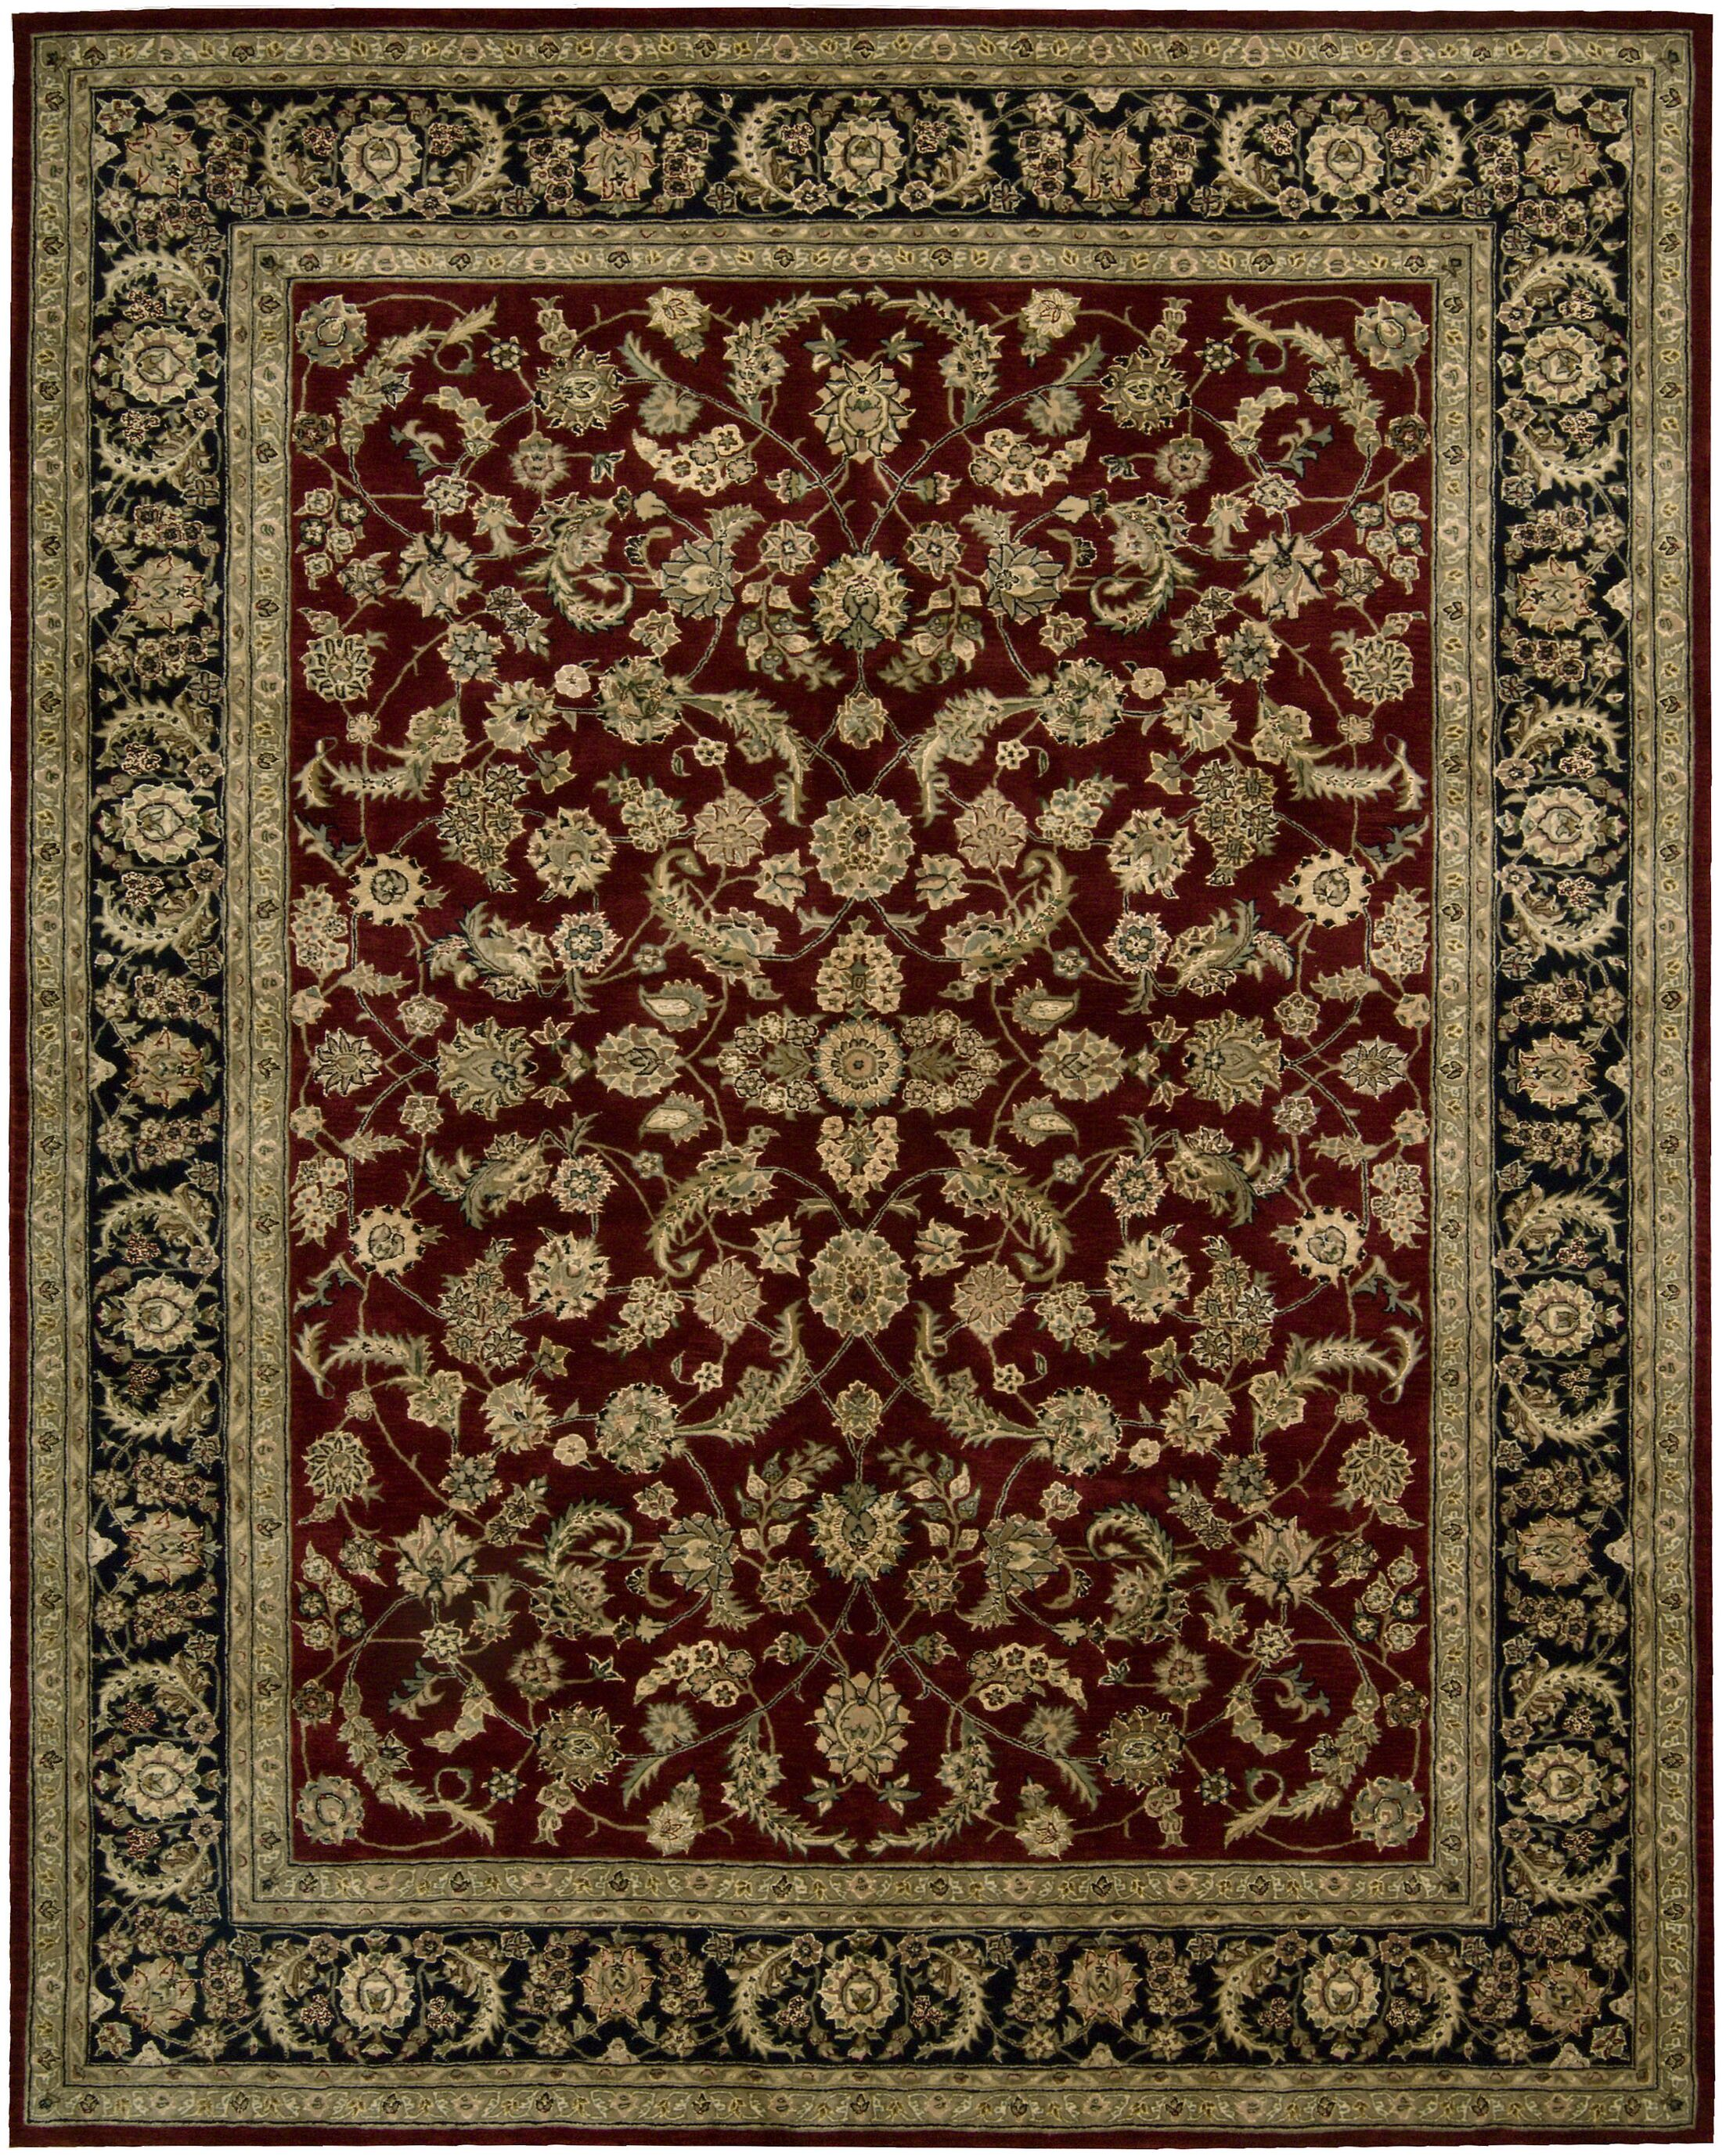 Ellerswick Hand Woven Wool Red/Green Indoor Area Rug Rug Size: Rectangle 5'6